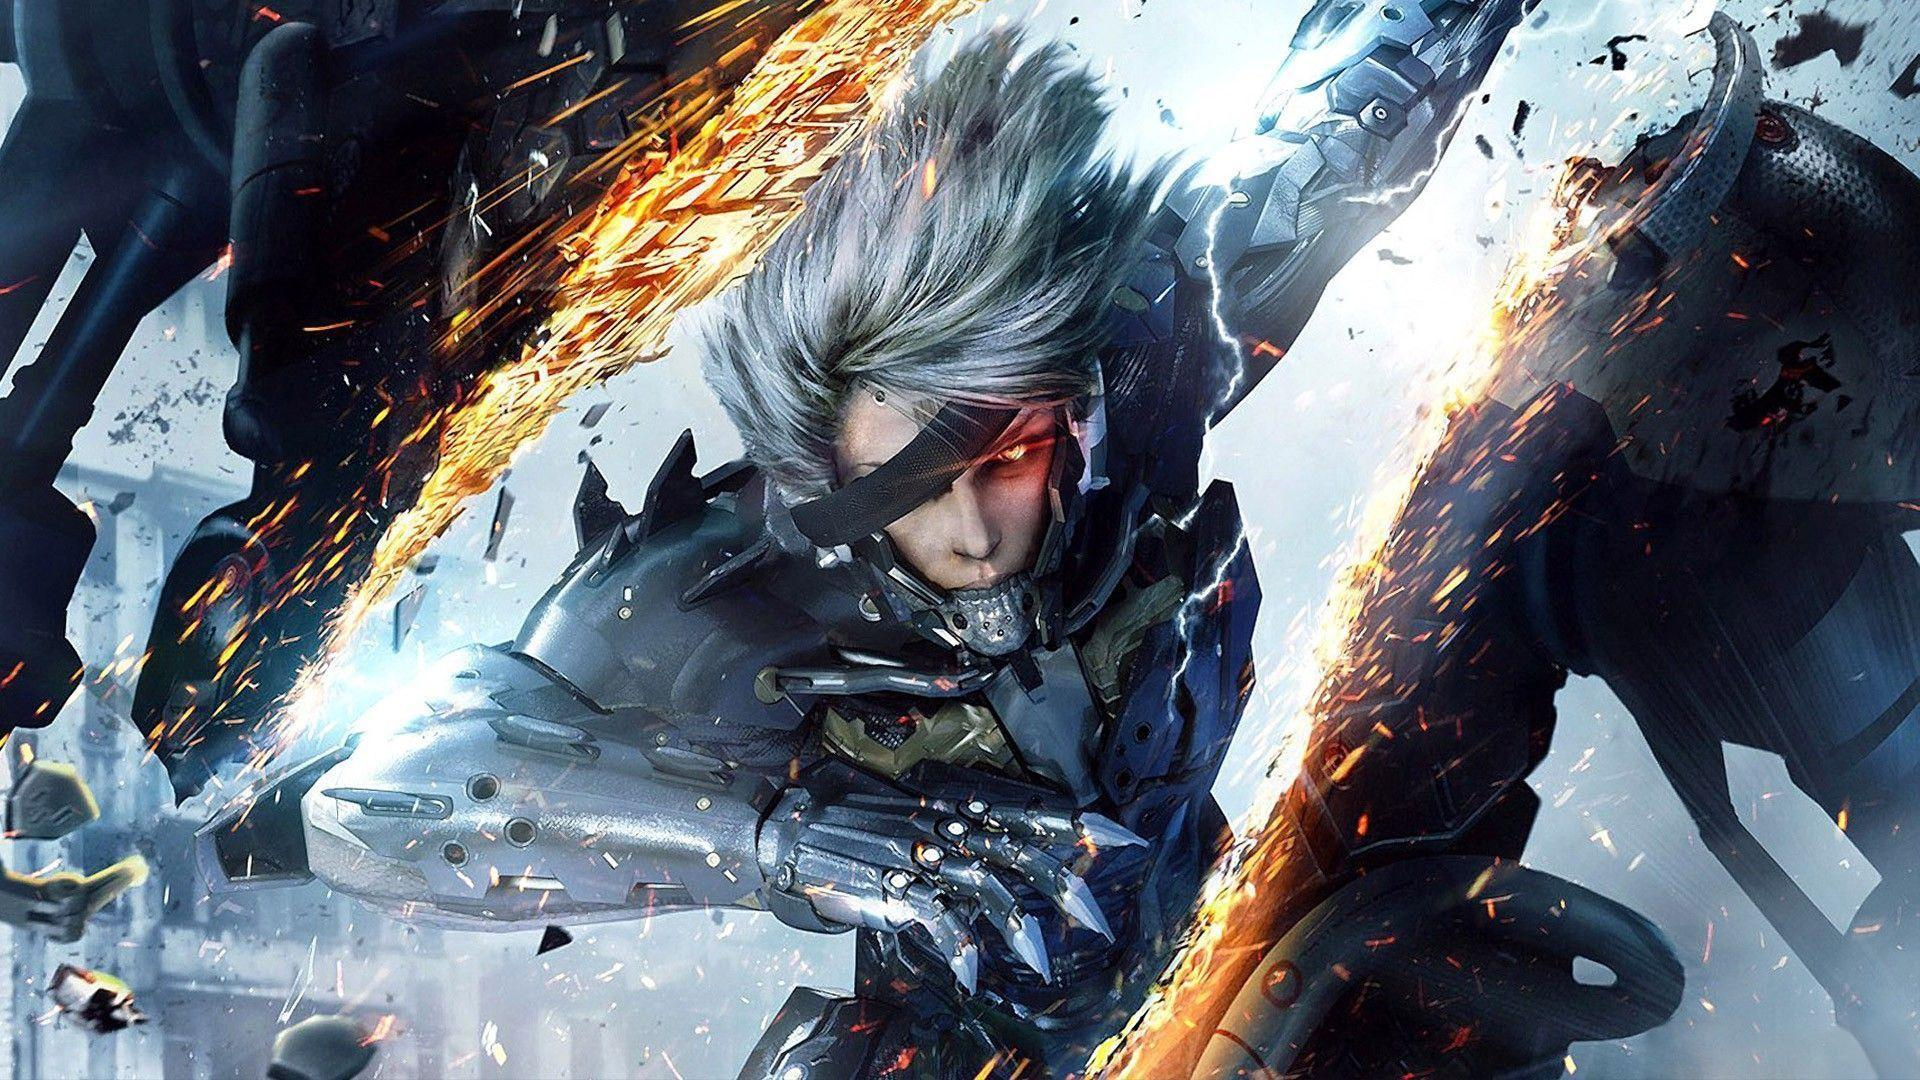 Metal gear rising wallpapers wallpaper cave raiden metal gear rising revengeance wallpaper voltagebd Choice Image